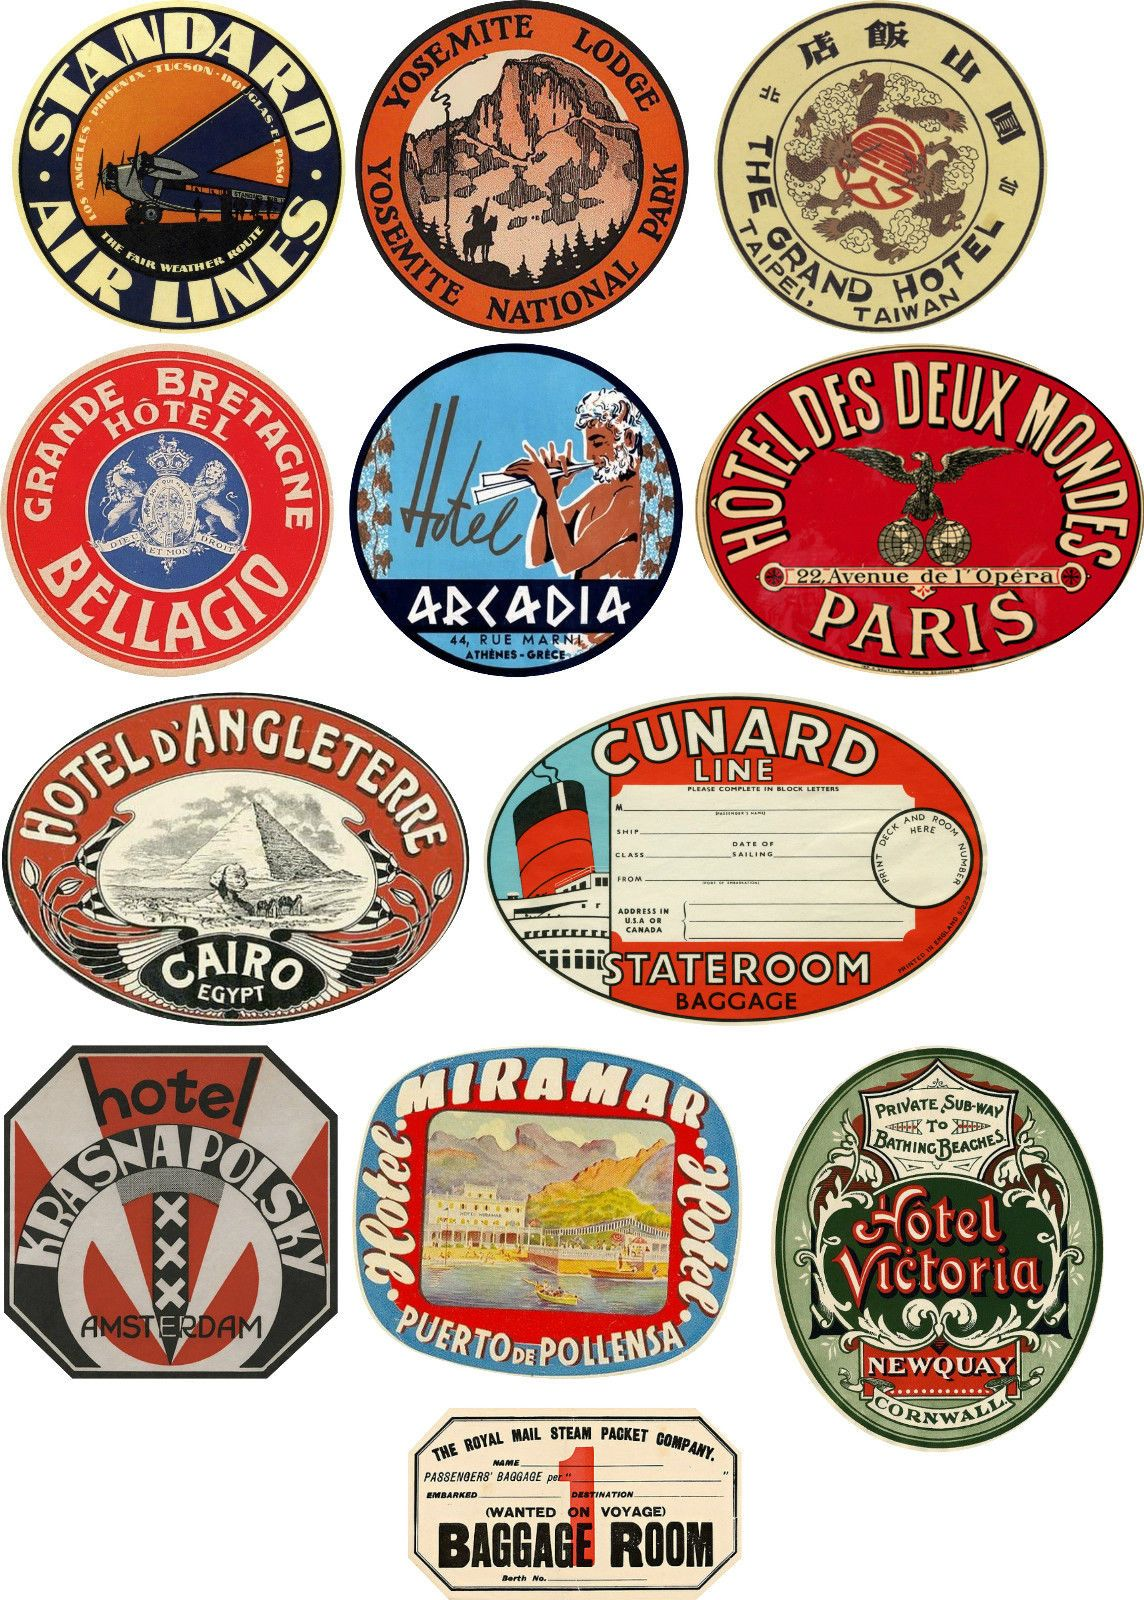 Vintage Style Travel Suitcase Luggage Labels Set Of 12 Vinyl Stickers Ebay Luggage Labels Luggage Stickers Suitcase Stickers